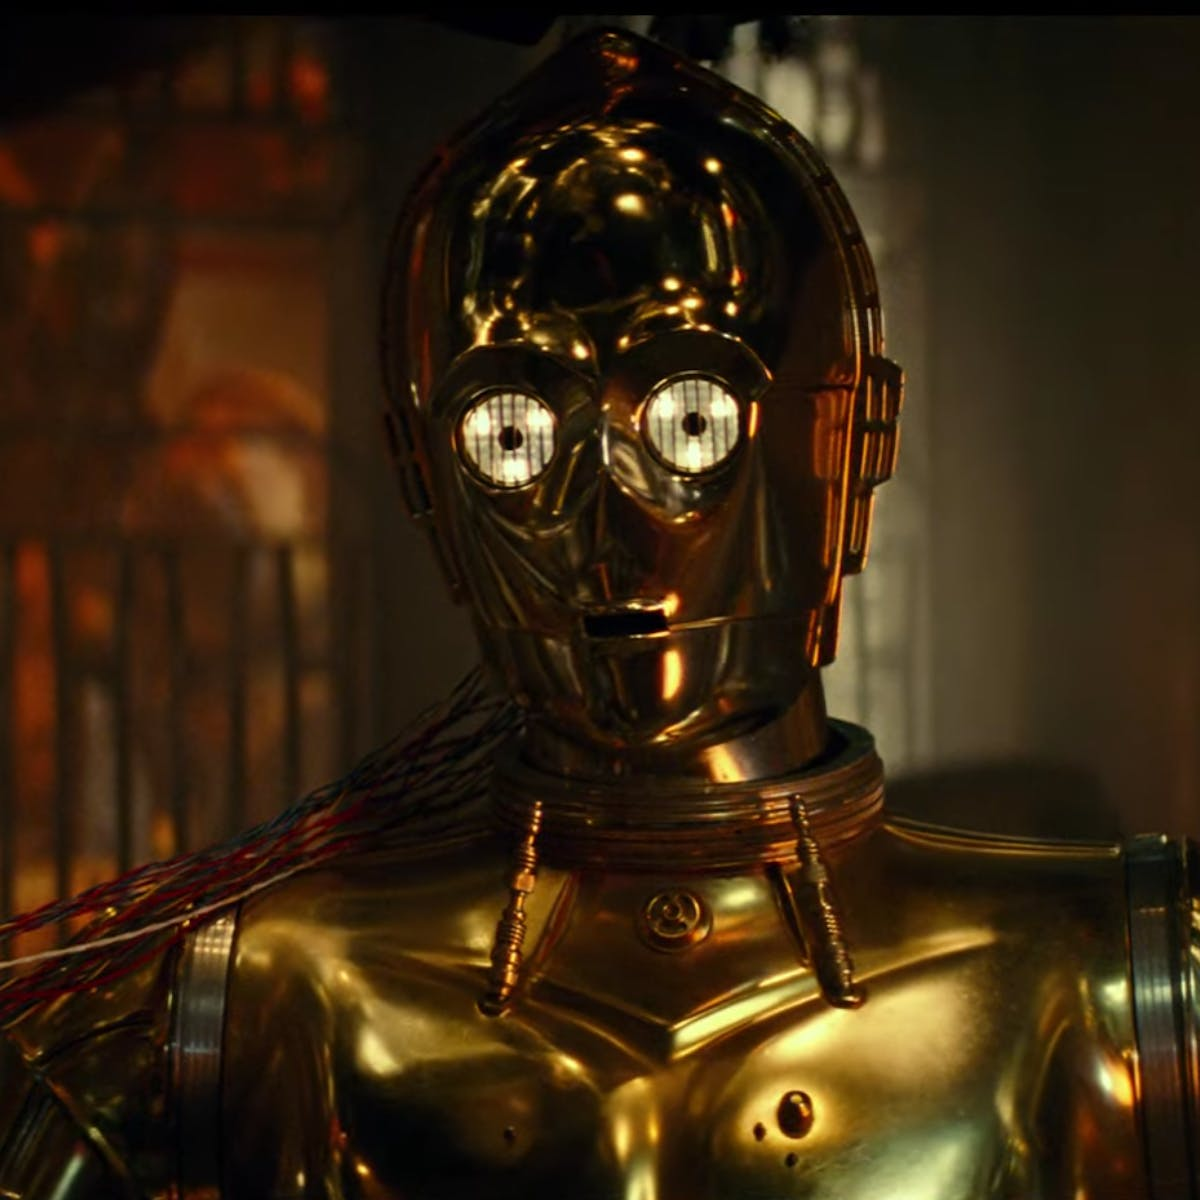 'Star Wars 9' final trailer: Why does the Resistance wipe C-3PO's memory?